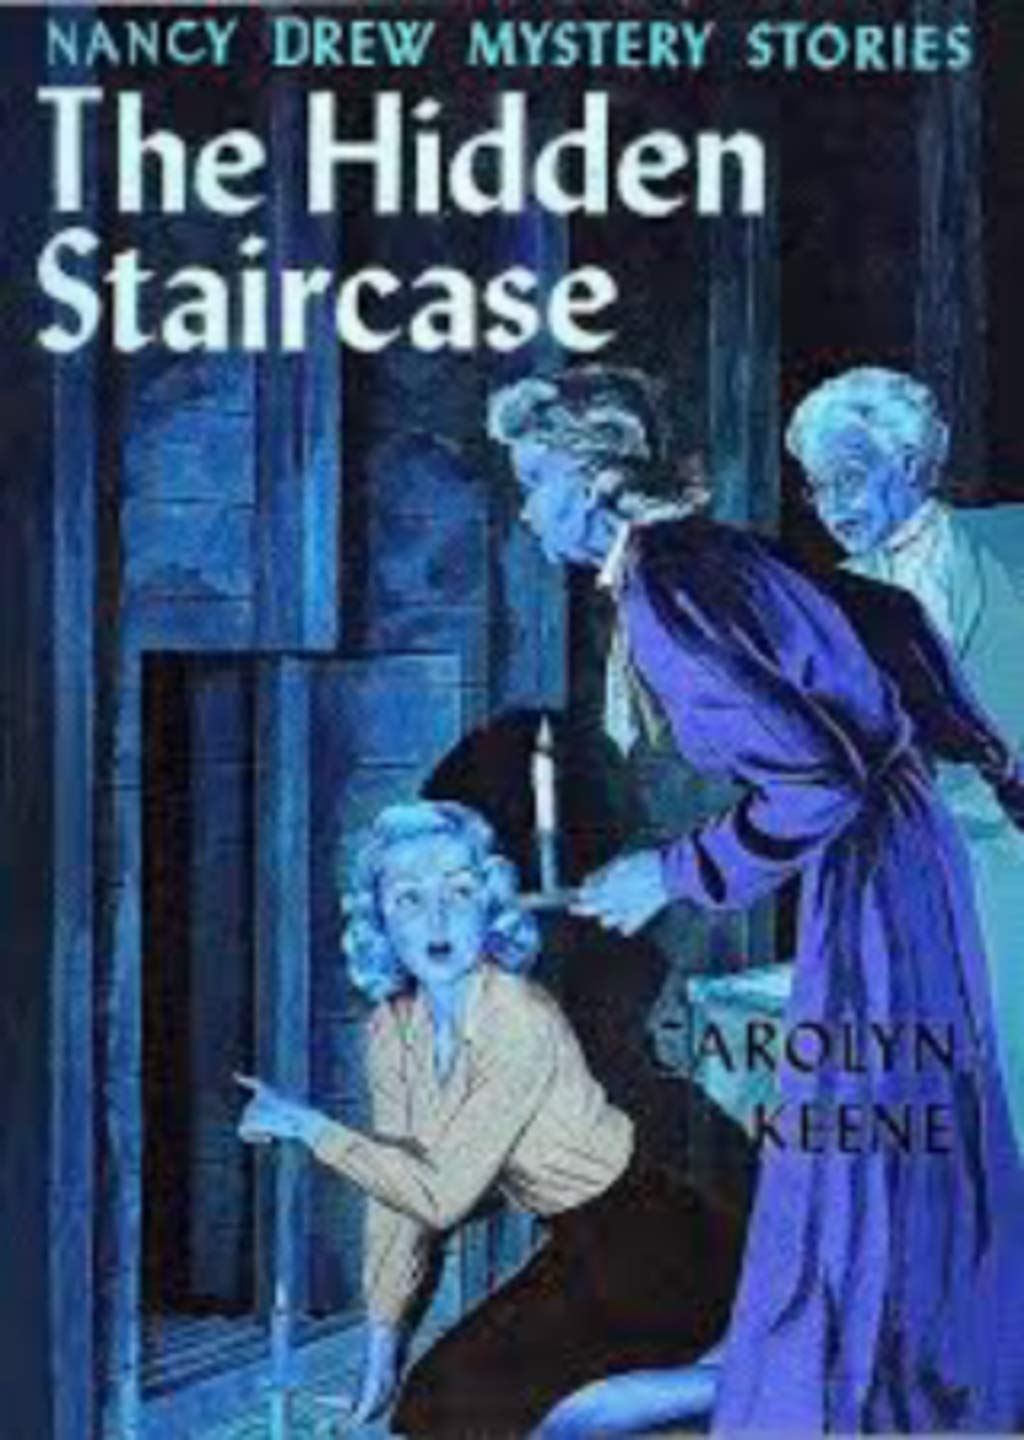 The Hidden Staircase [Revised Edition] (Nancy Drew Mystery #2